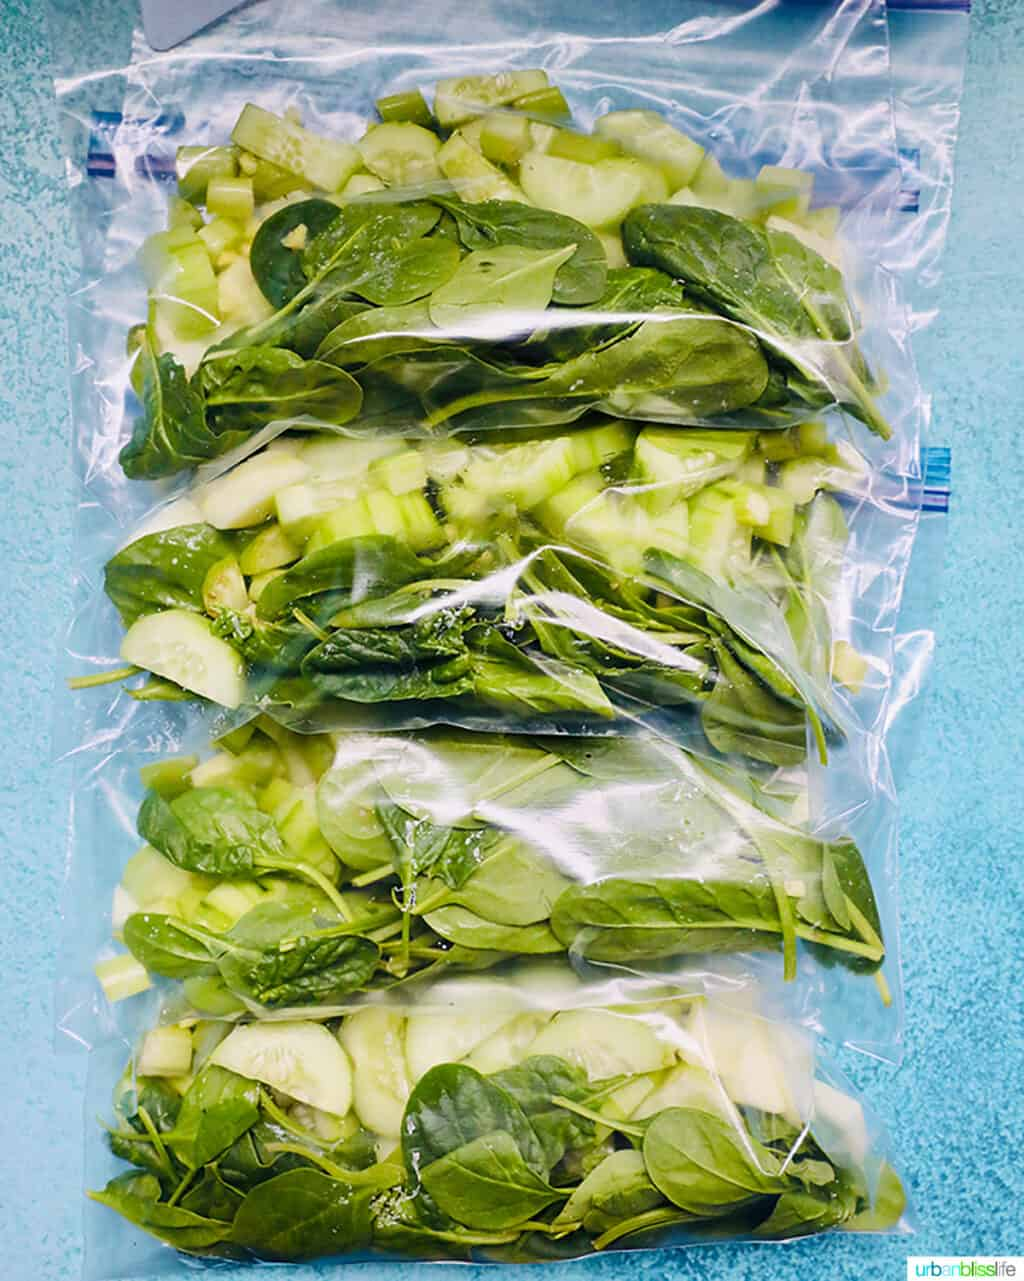 freezer-ready green smoothie packs